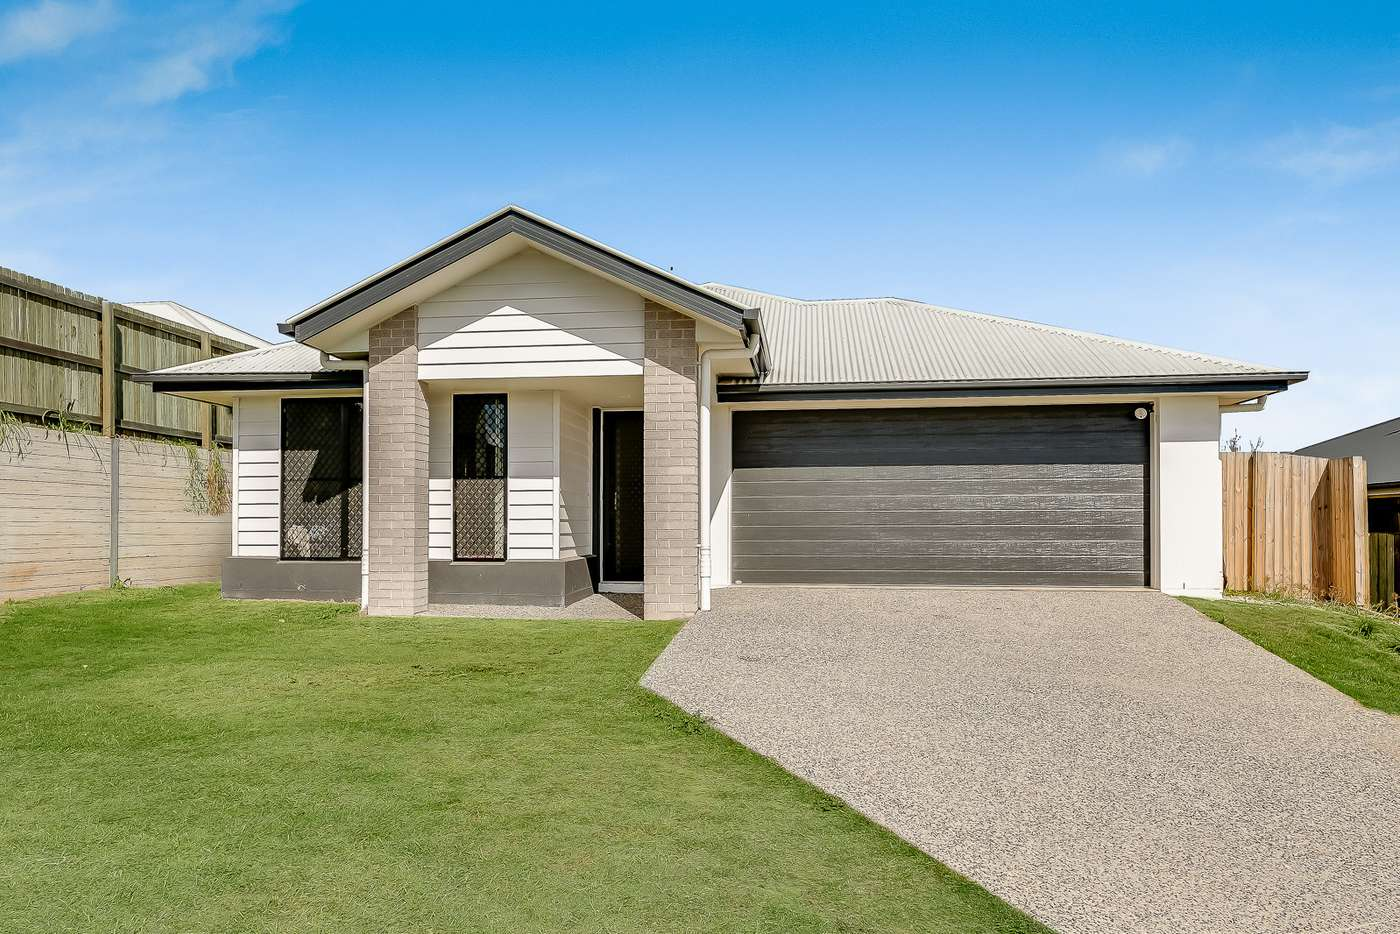 Main view of Homely house listing, 10 Menton Place, Harristown QLD 4350